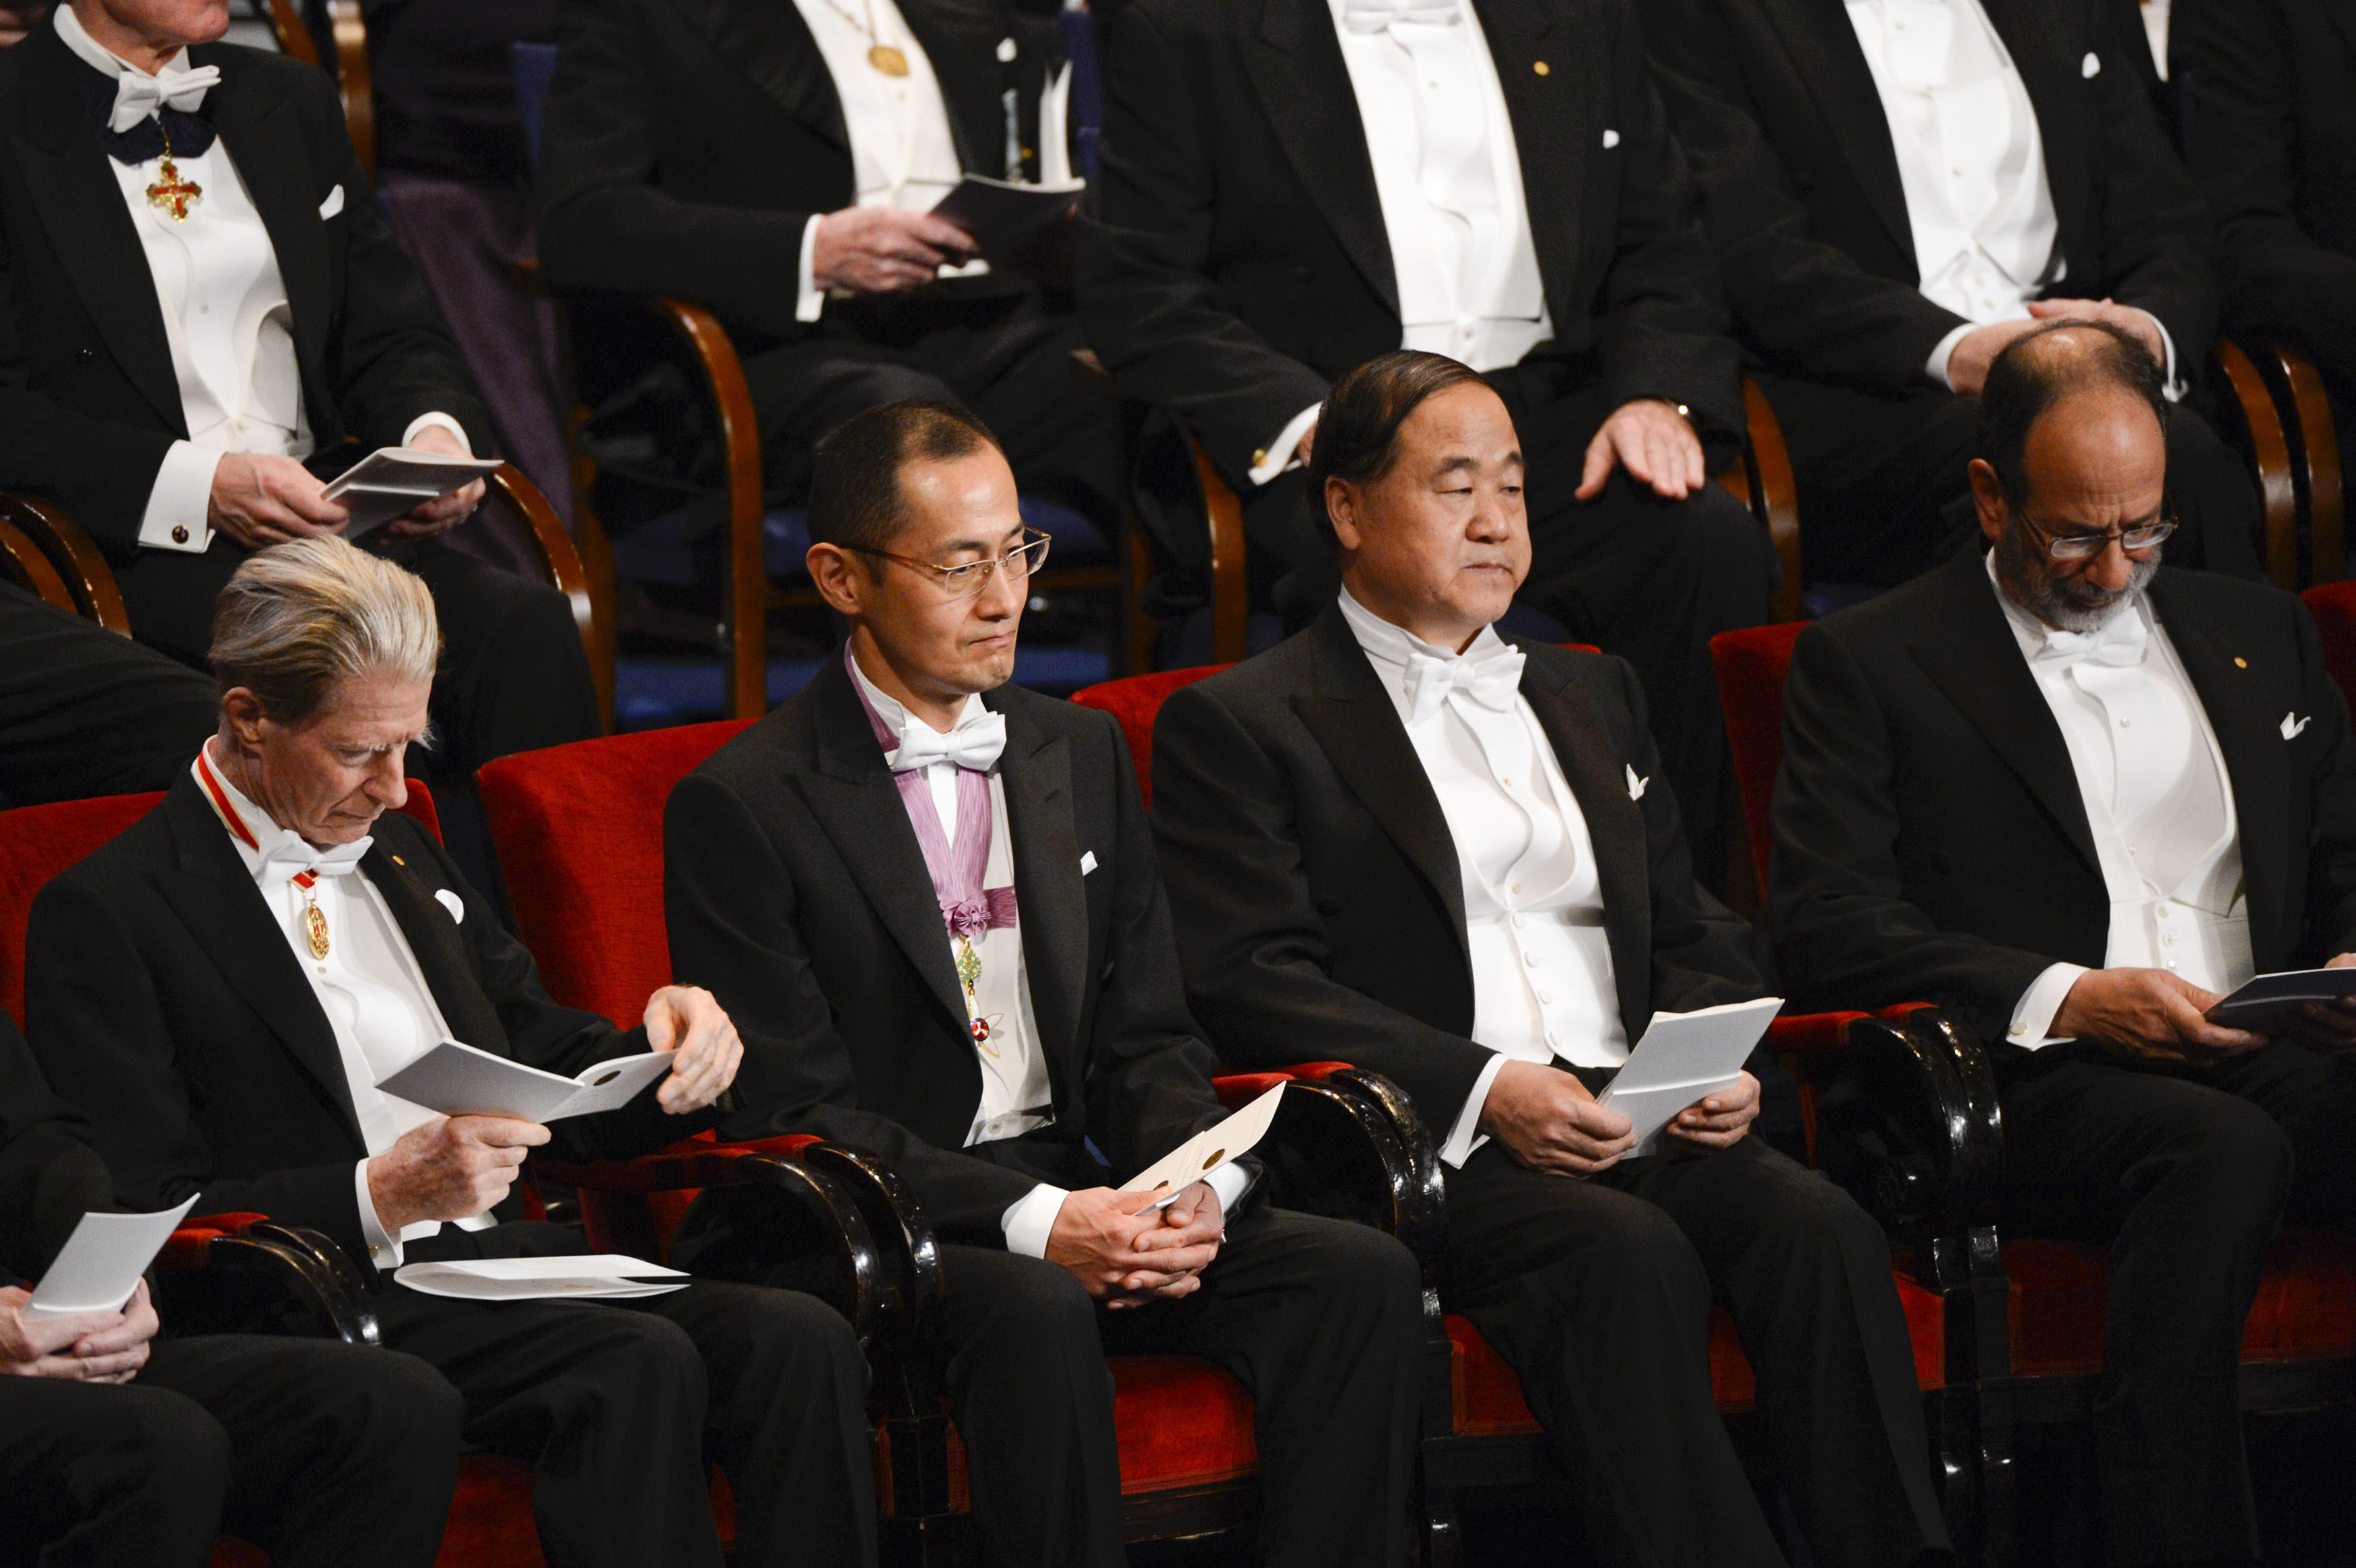 Laureates of the 2012 Nobel Prize for Physiology or Medicine John B. Gurdon (L) of Britain and Shinya Yamanaka of Japan (2nd L) sit with winner of the 2012 Nobel Prize for Literature Mo Yan (2nd R) of China and joint laureate for the 2012 Nobel Prize for Economics Alvin Roth of the U.S. during the Nobel Prize award ceremony at the Stockholm Concert Hall in Stockholm December 10, 2012. REUTERS/Henrik Montgomery/Scanpix (SWEDEN - Tags: SOCIETY) THIS IMAGE HAS BEEN SUPPLIED BY A THIRD PARTY. IT IS DISTRIBUTED, EXACTLY AS RECEIVED BY REUTERS, AS A SERVICE TO CLIENTS. SWEDEN OUT. NO COMMERCIAL OR EDITORIAL SALES IN SWEDEN. NO COMMERCIAL SALES - GM1E8CB00FS01